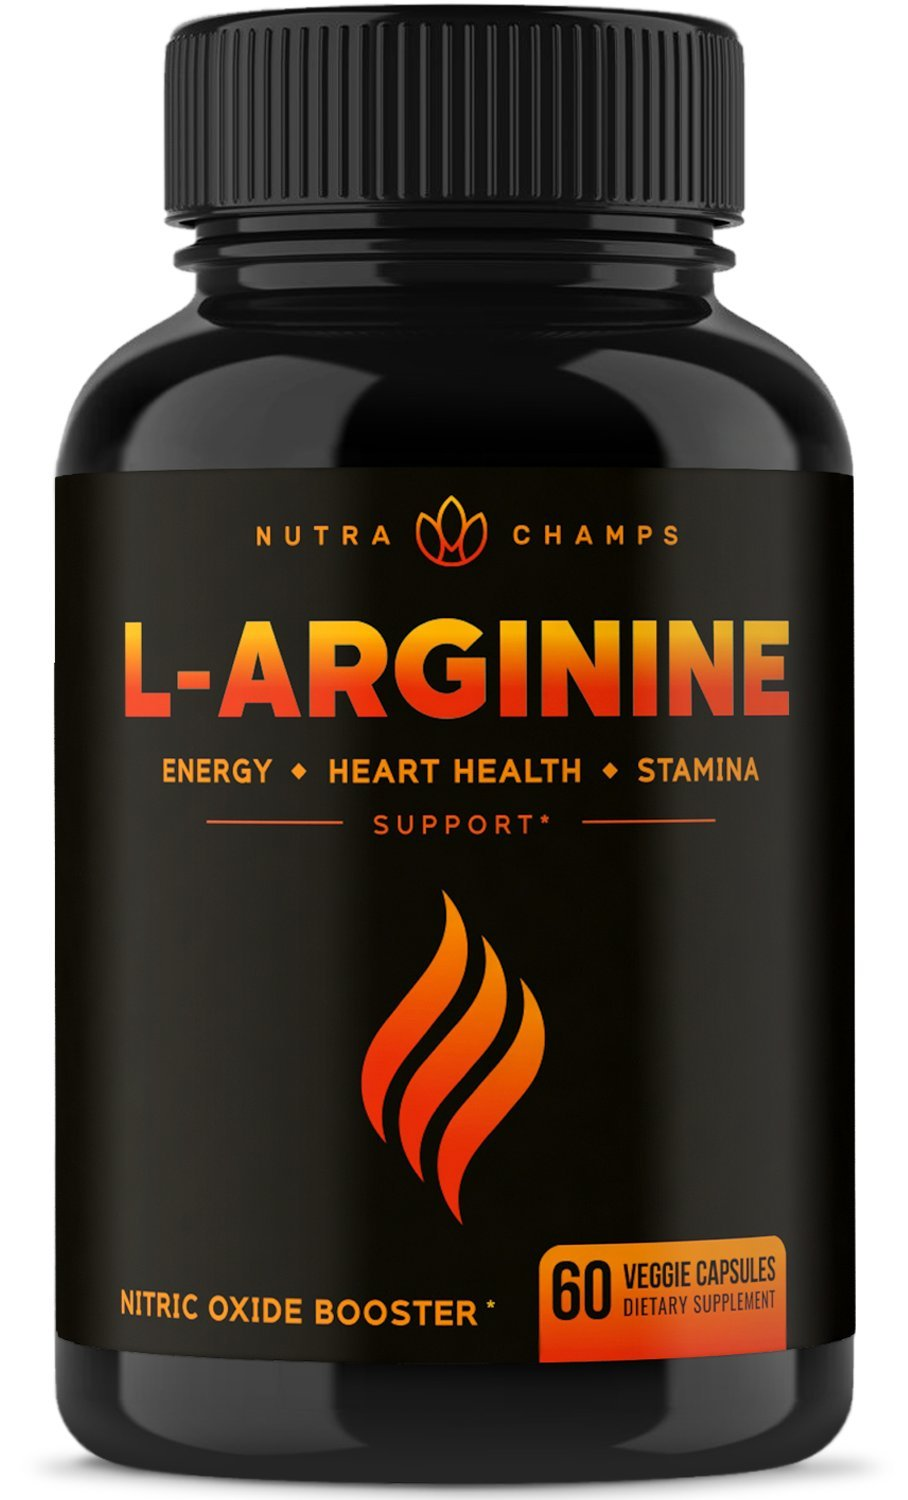 Premium L Arginine 1500mg Nitric Oxide Supplement - Extra Strength for Energy, Muscle Growth, Heart Health, Vascularity & Stamina - Powerful NO Booster Capsules with L-Arginine & L-Citrulline Powder by NutraChamps